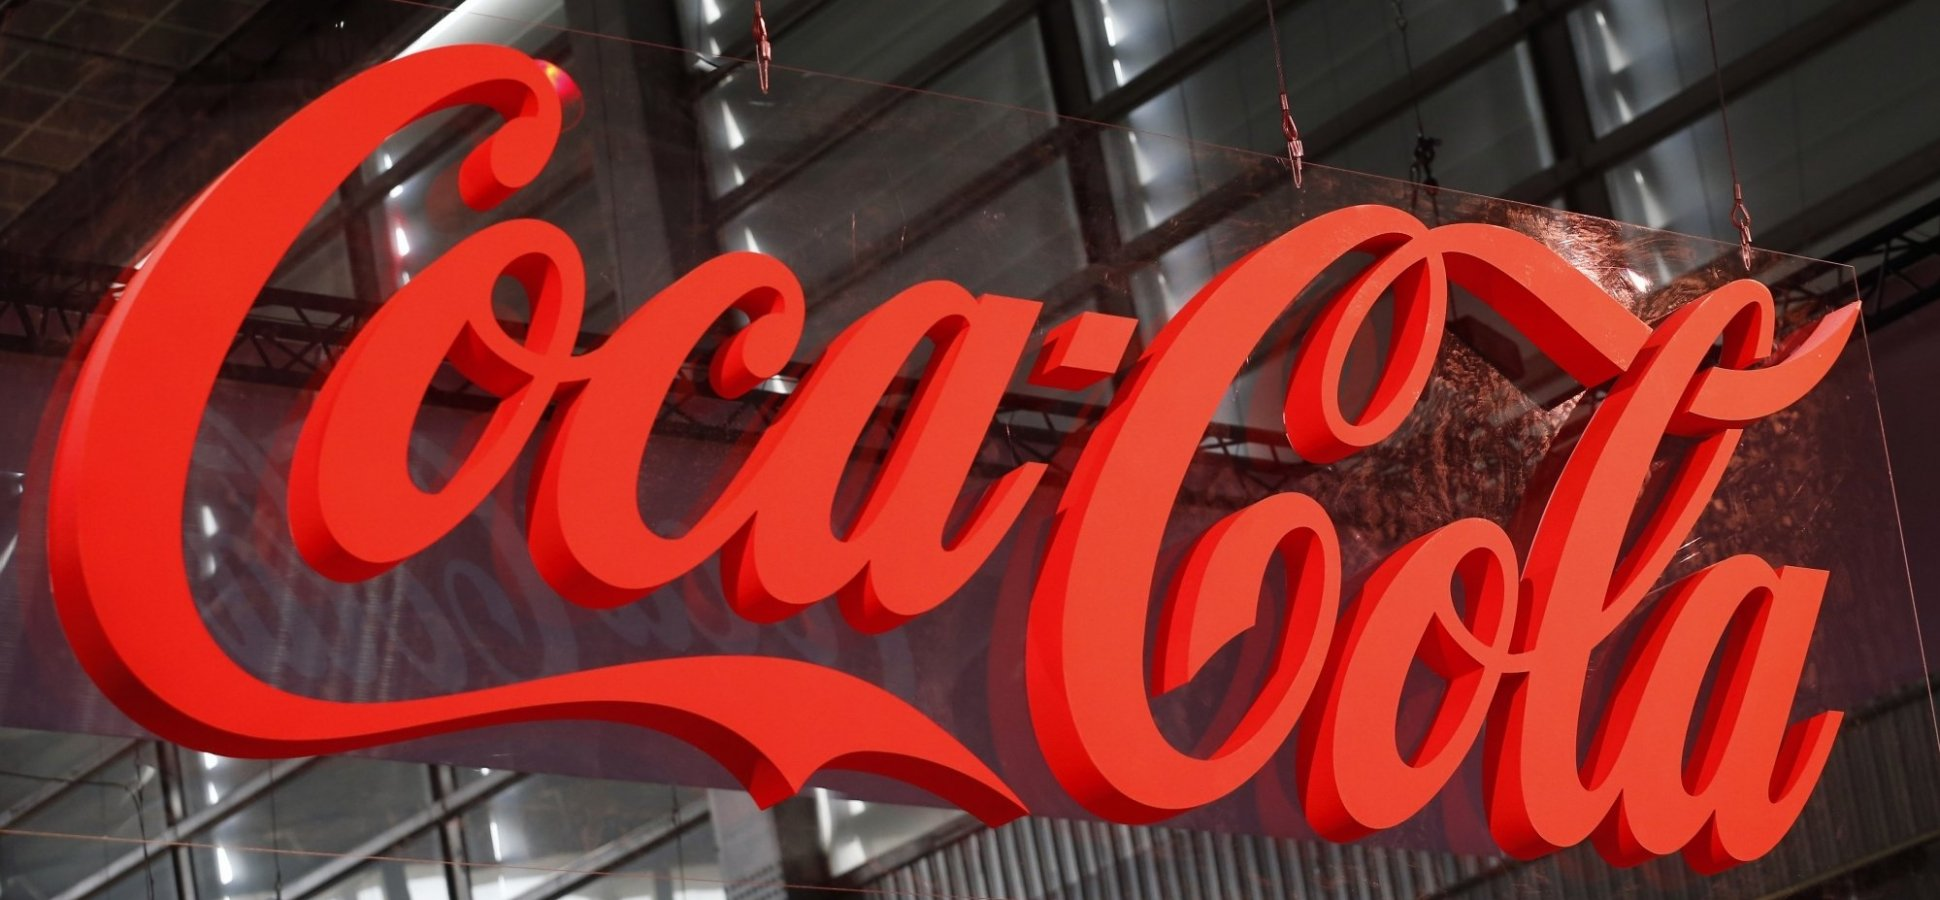 Coca-Cola Just Announced Its Biggest Launch In A Decade. The Idea Behind It May Make Your Head Spin